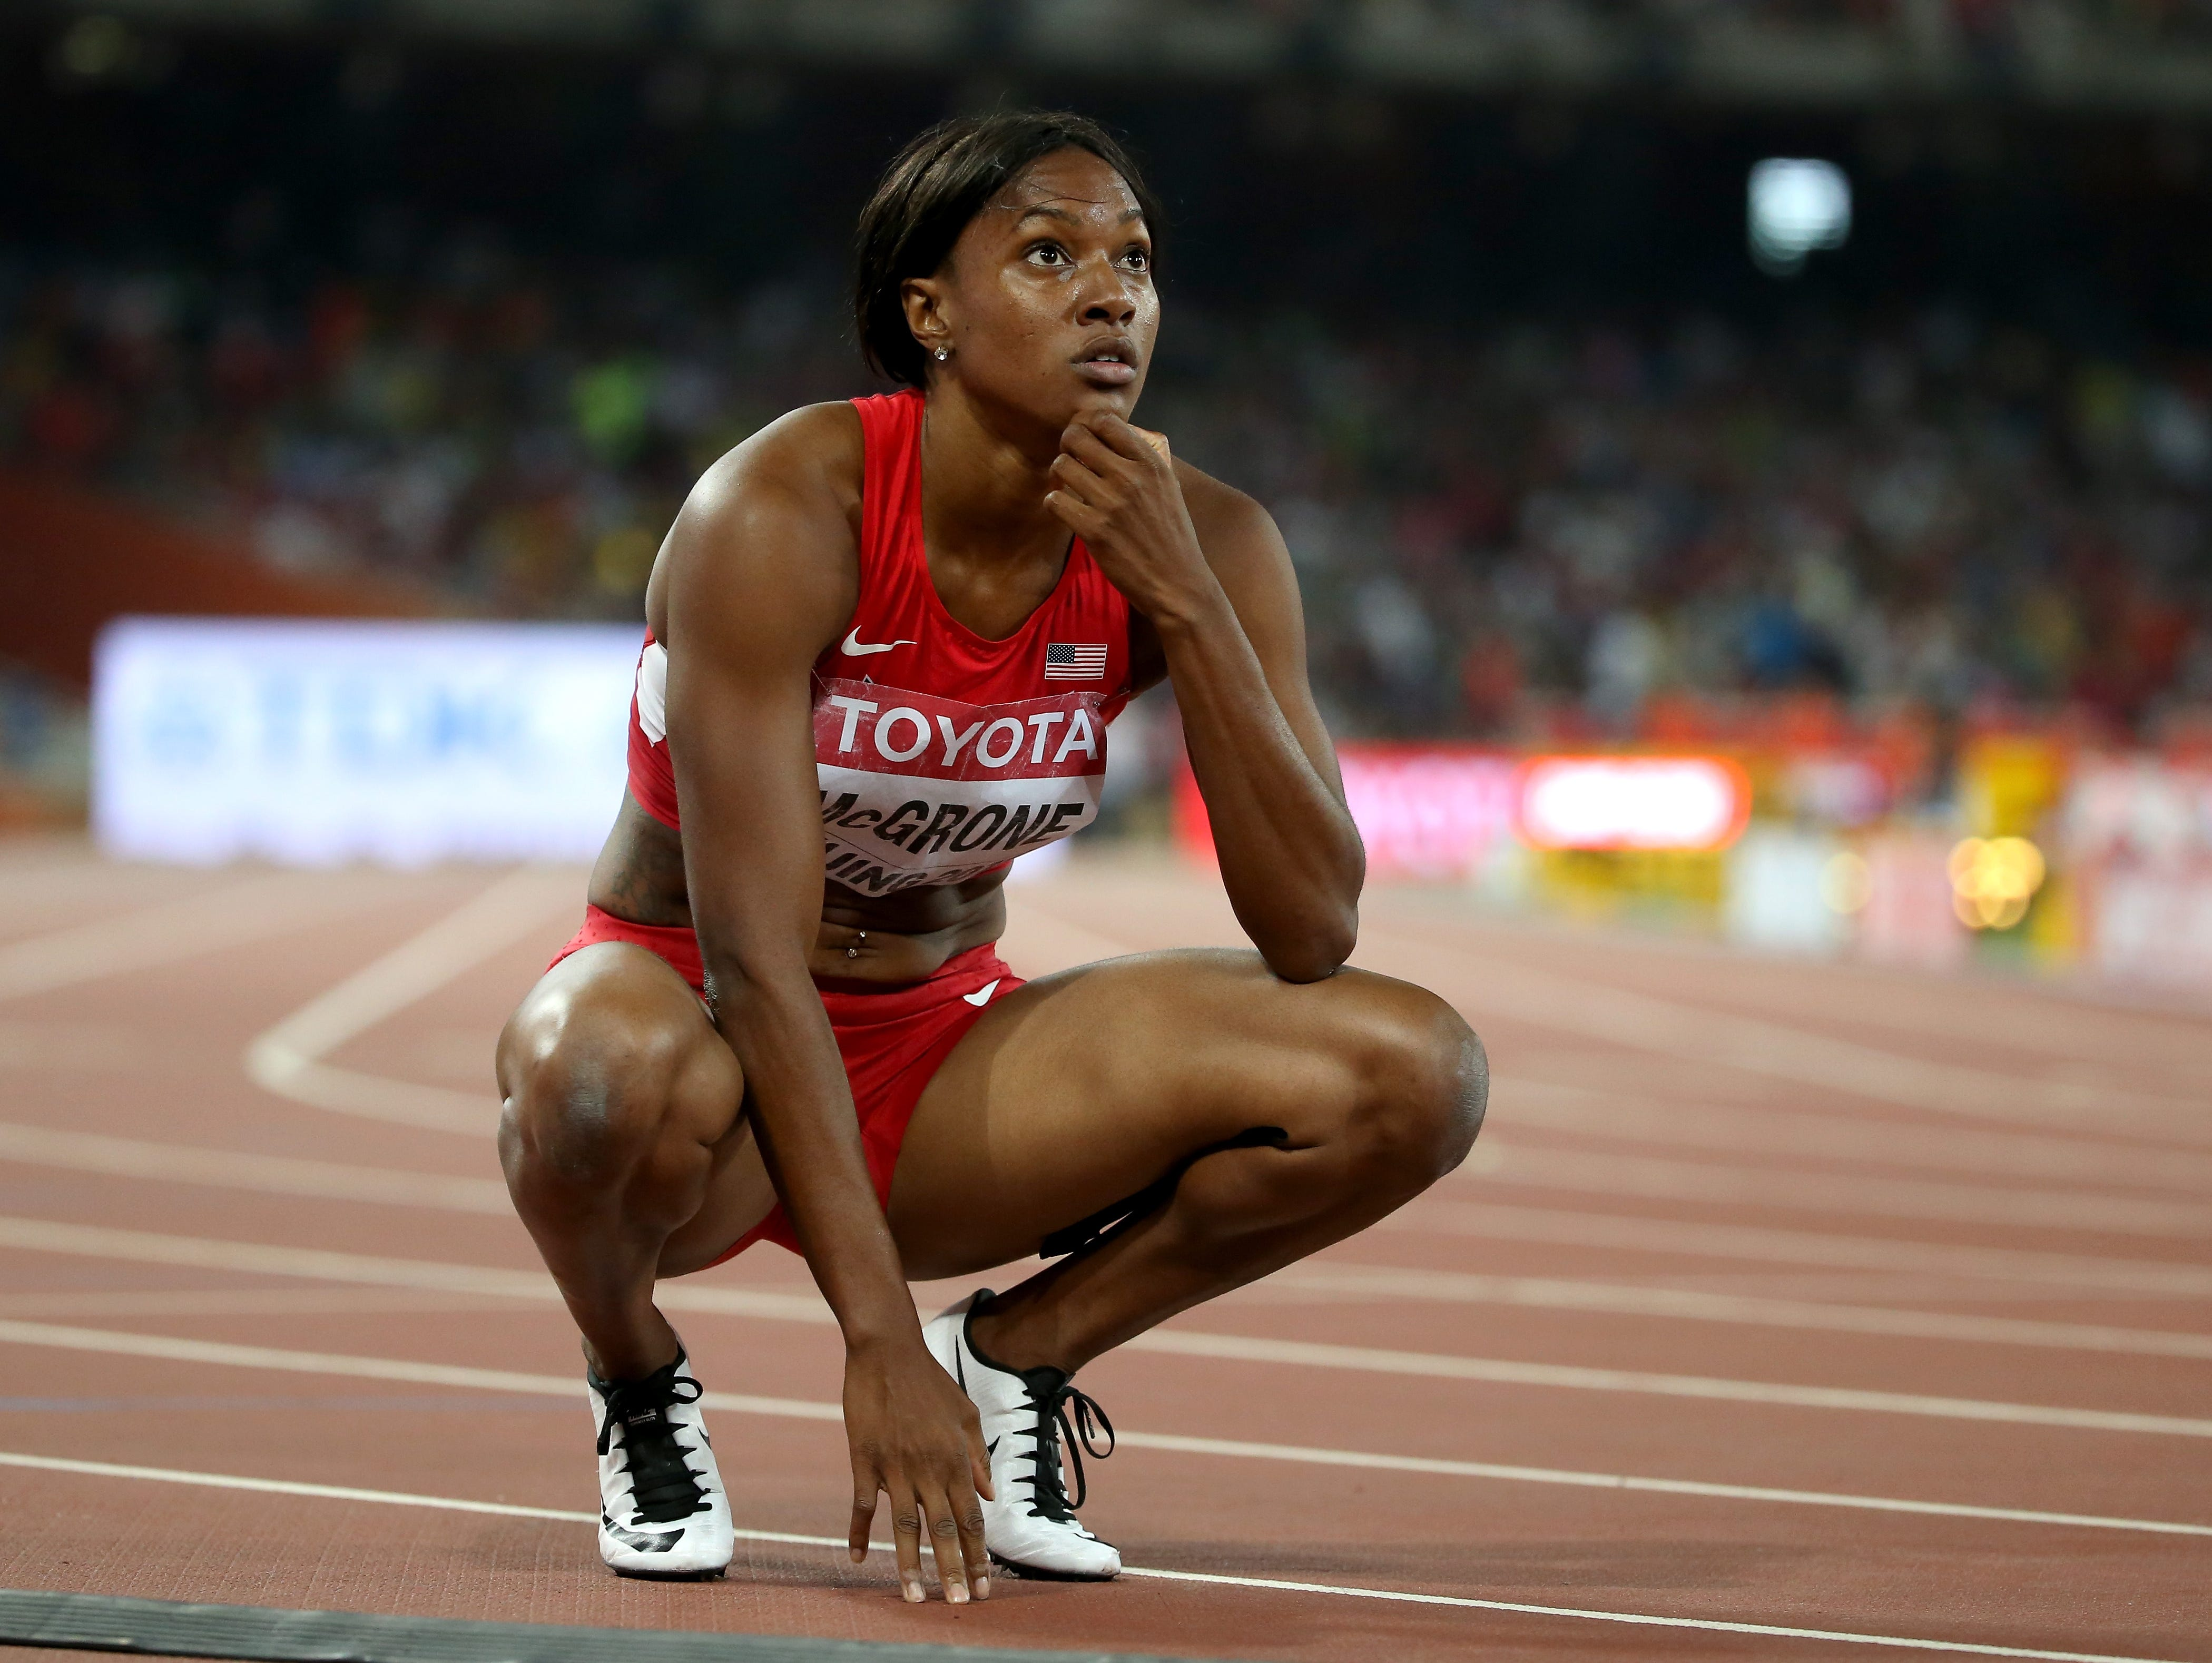 Candyce McGrone of the United States reacts after the Women's 200 metres Final during day seven of the 15th IAAF World Athletics Championships Beijing 2015 at Beijing National Stadium on August 28, 2015 in Beijing, China.